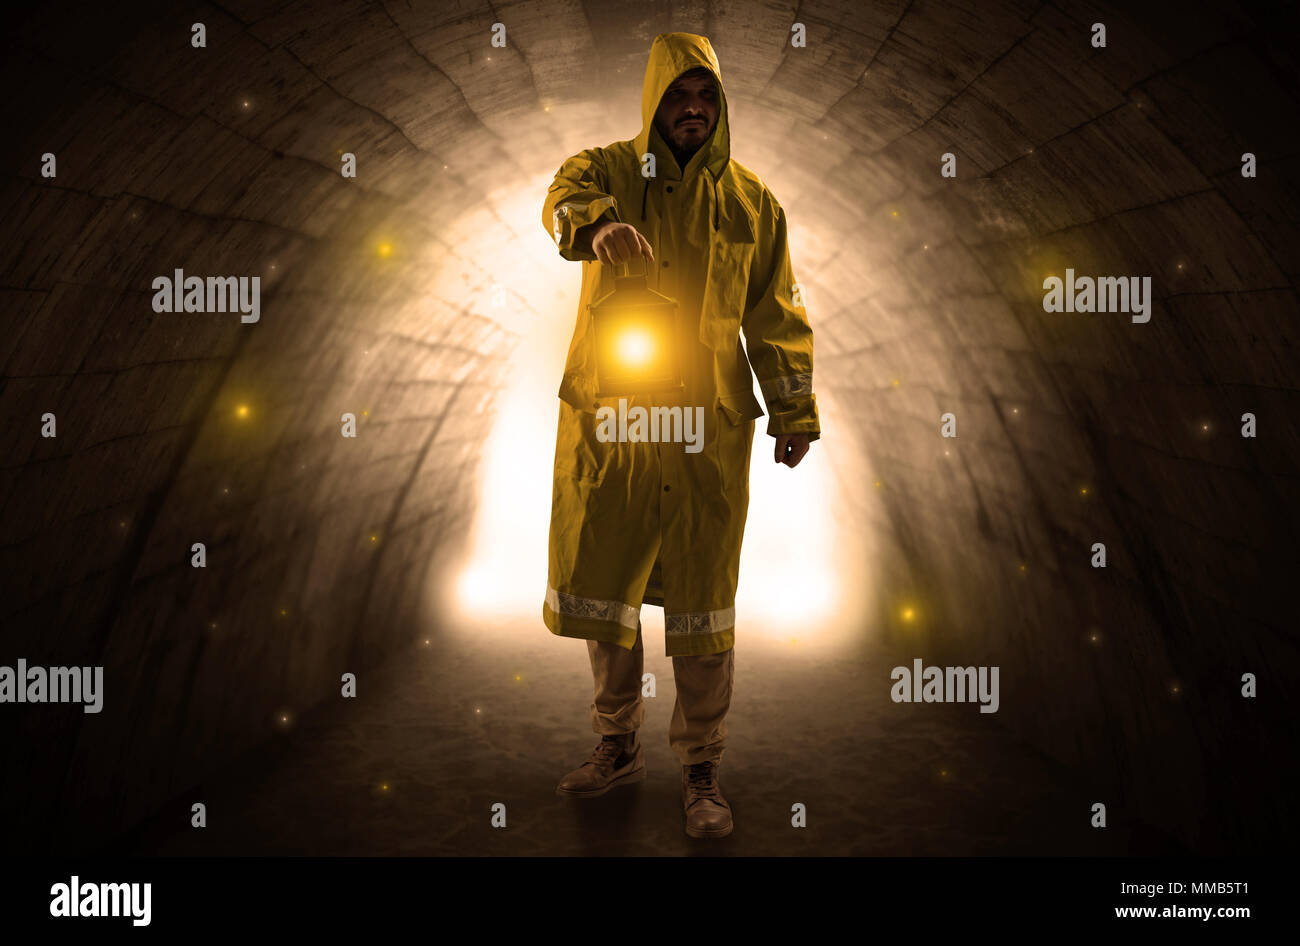 Ugly man in raincoat walking with glowing lantern in a dark tunnel Stock Photo